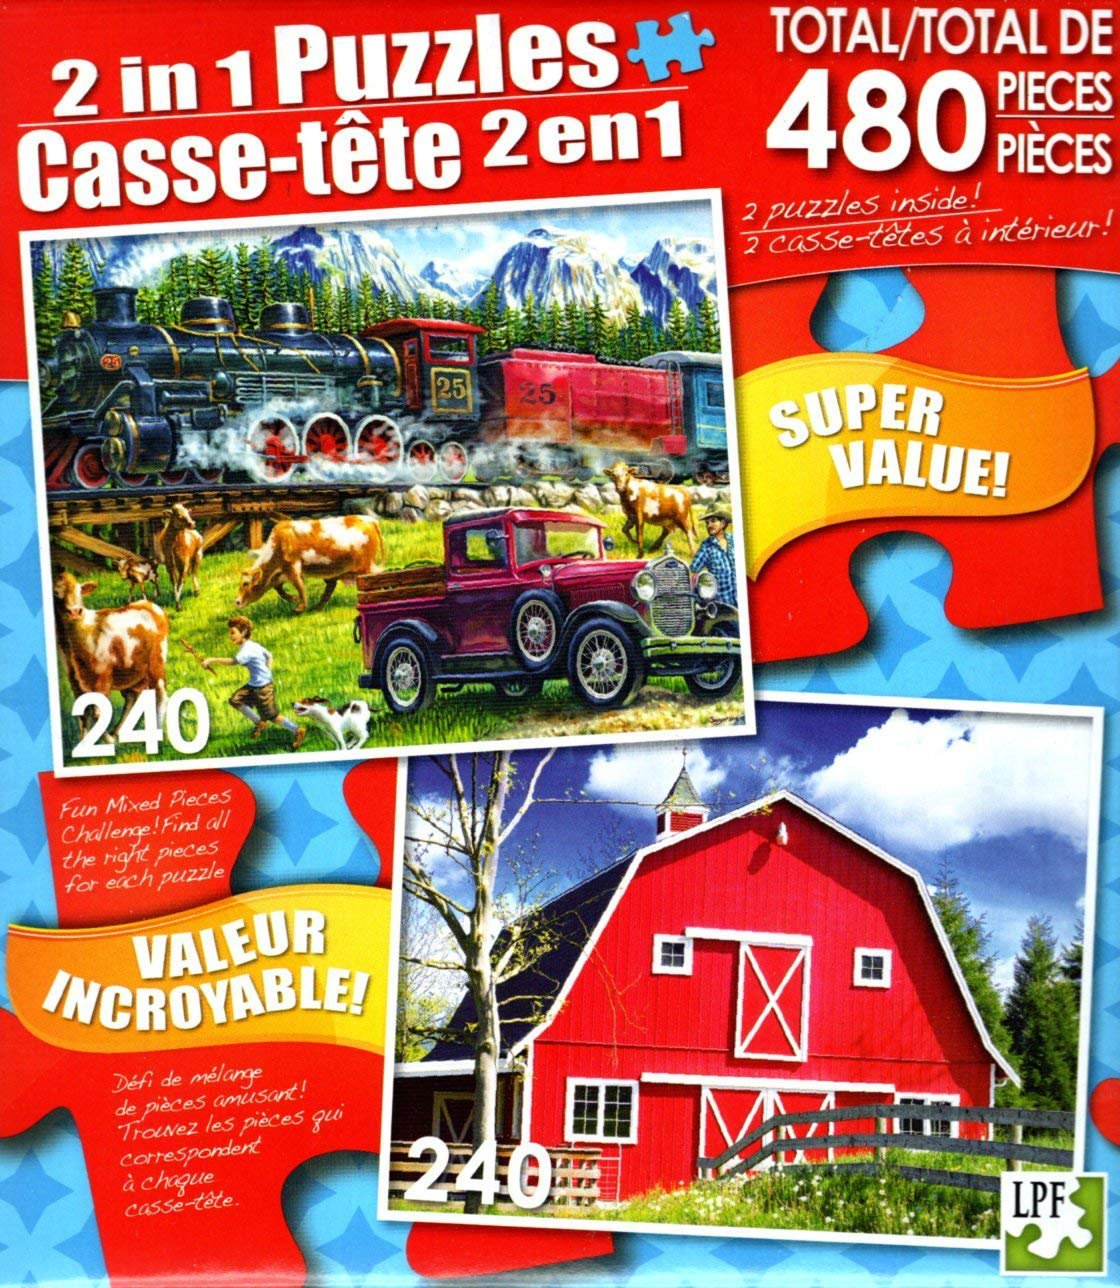 LPF Great Western Train - Big Red Country Barn - Total 480 Piece 2 in 1 Jigsaw Puzzles